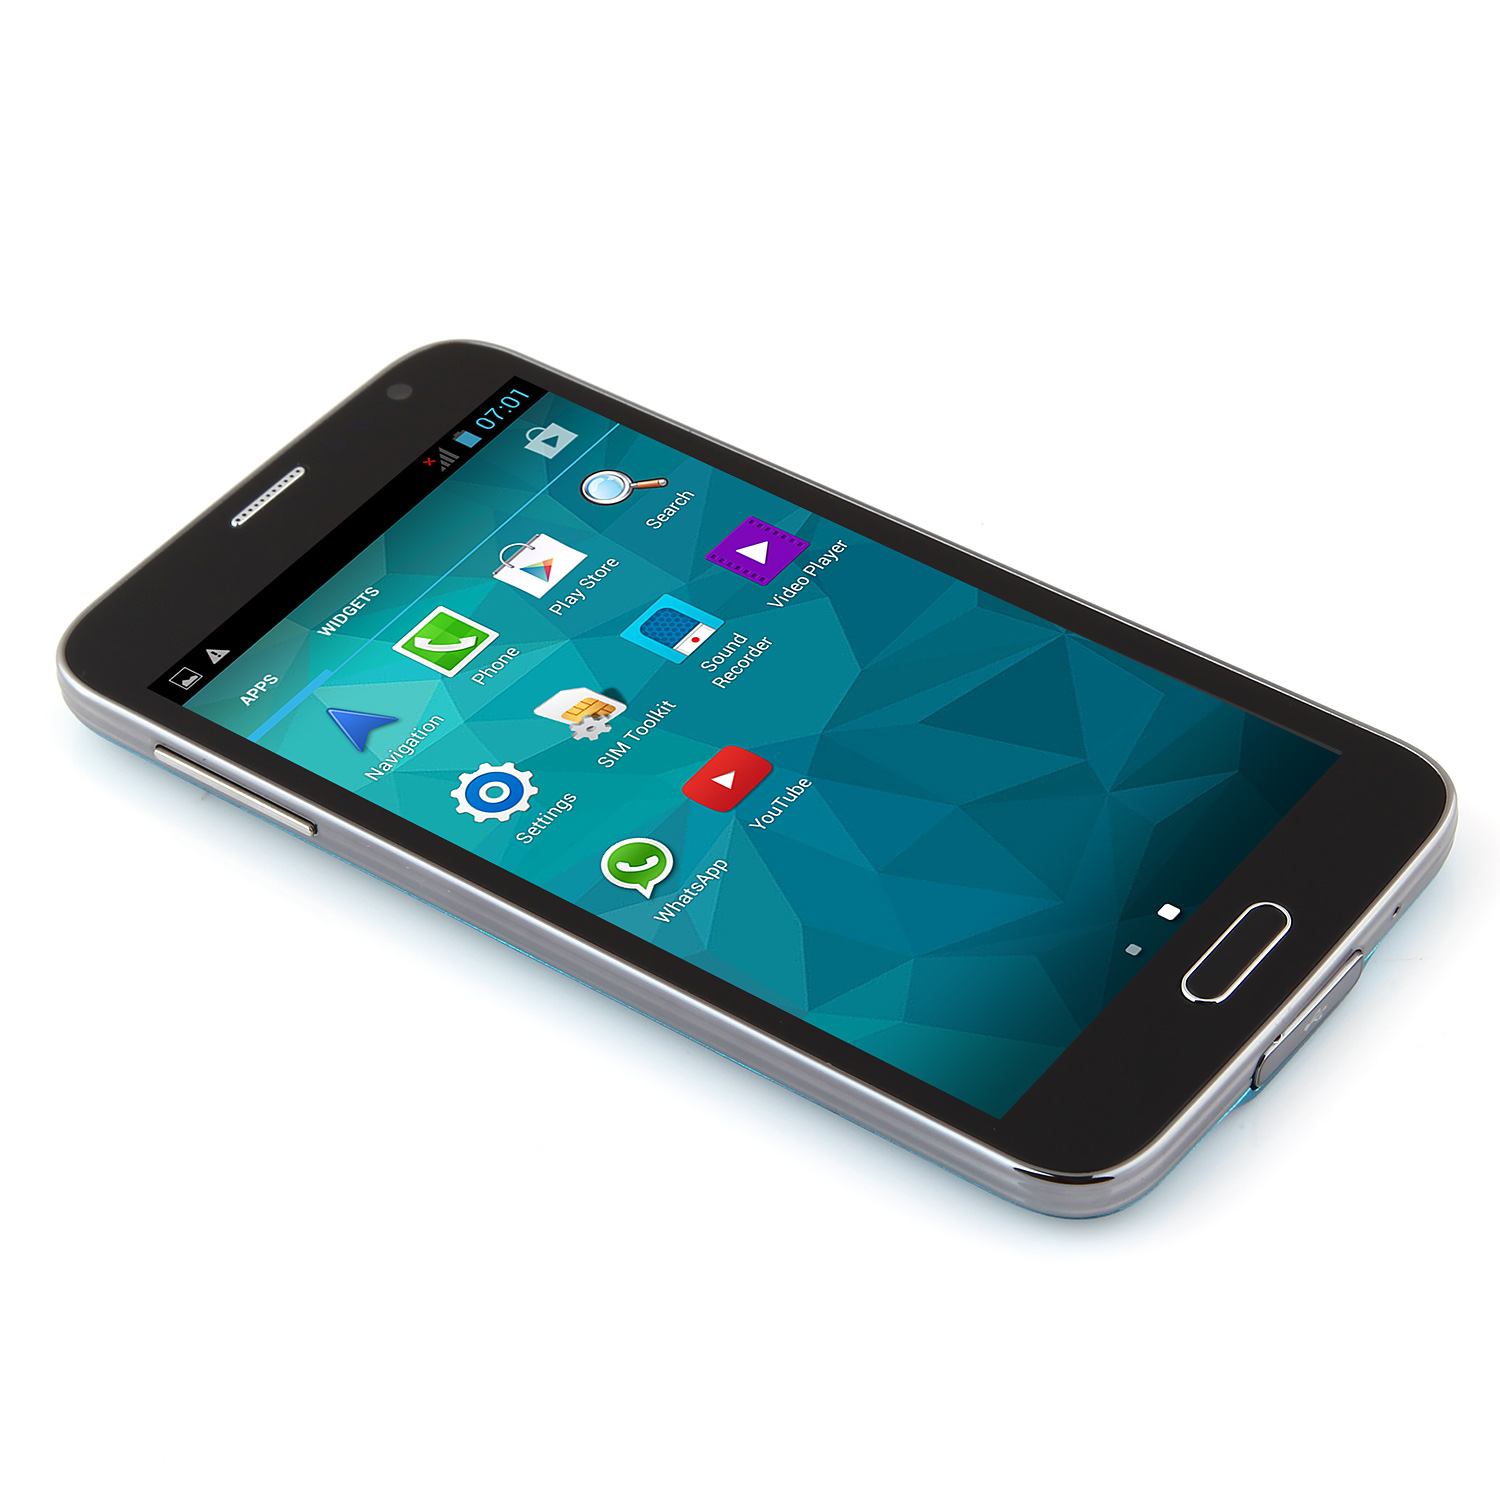 Doxio G900H Smartphone Android 4.2 MTK6572W  5.0 Inch 3G GPS Blue